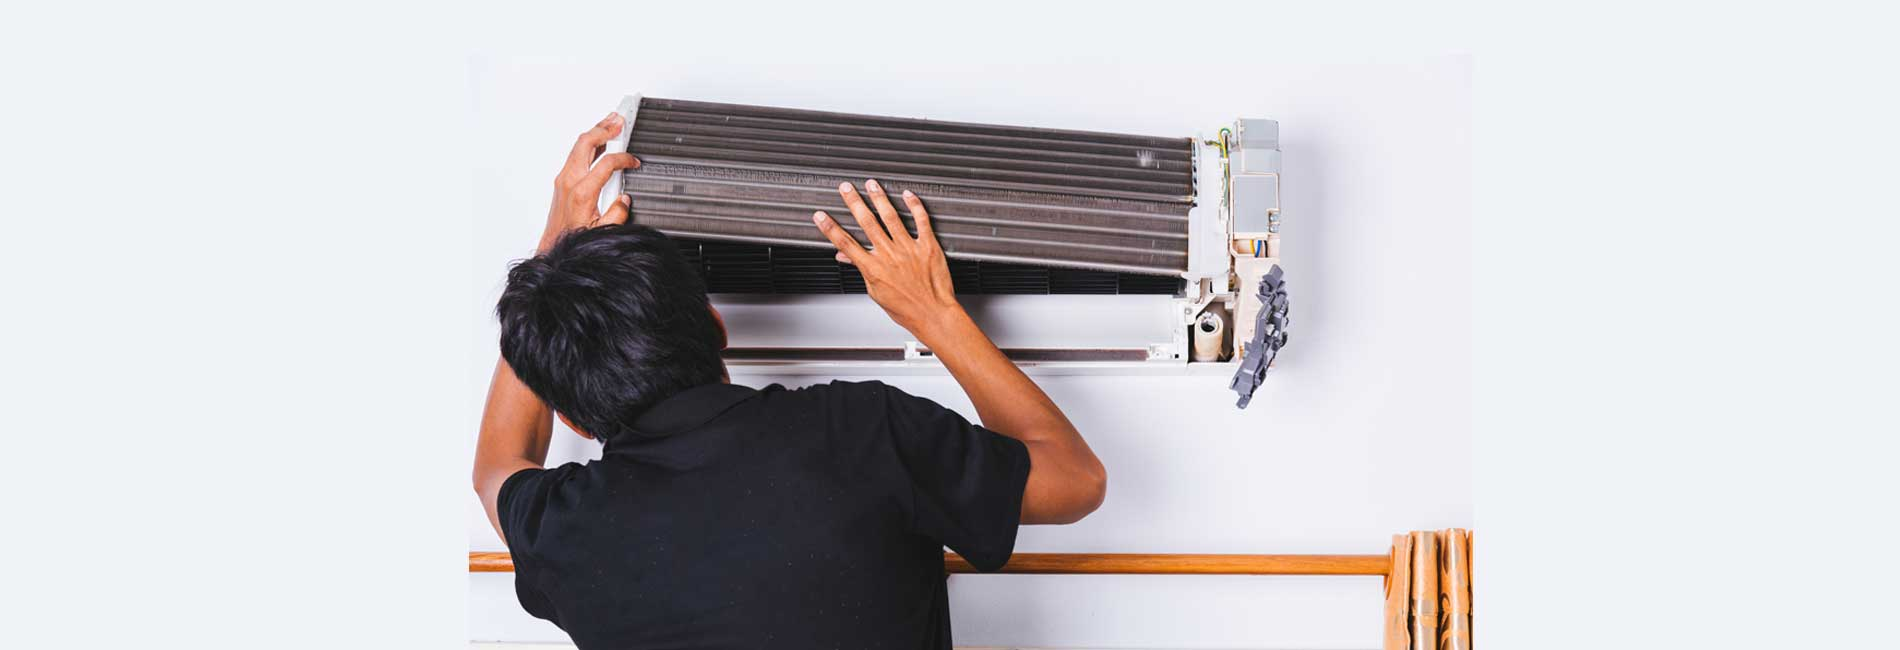 Whirlpool AC Installation in Choolaimedu